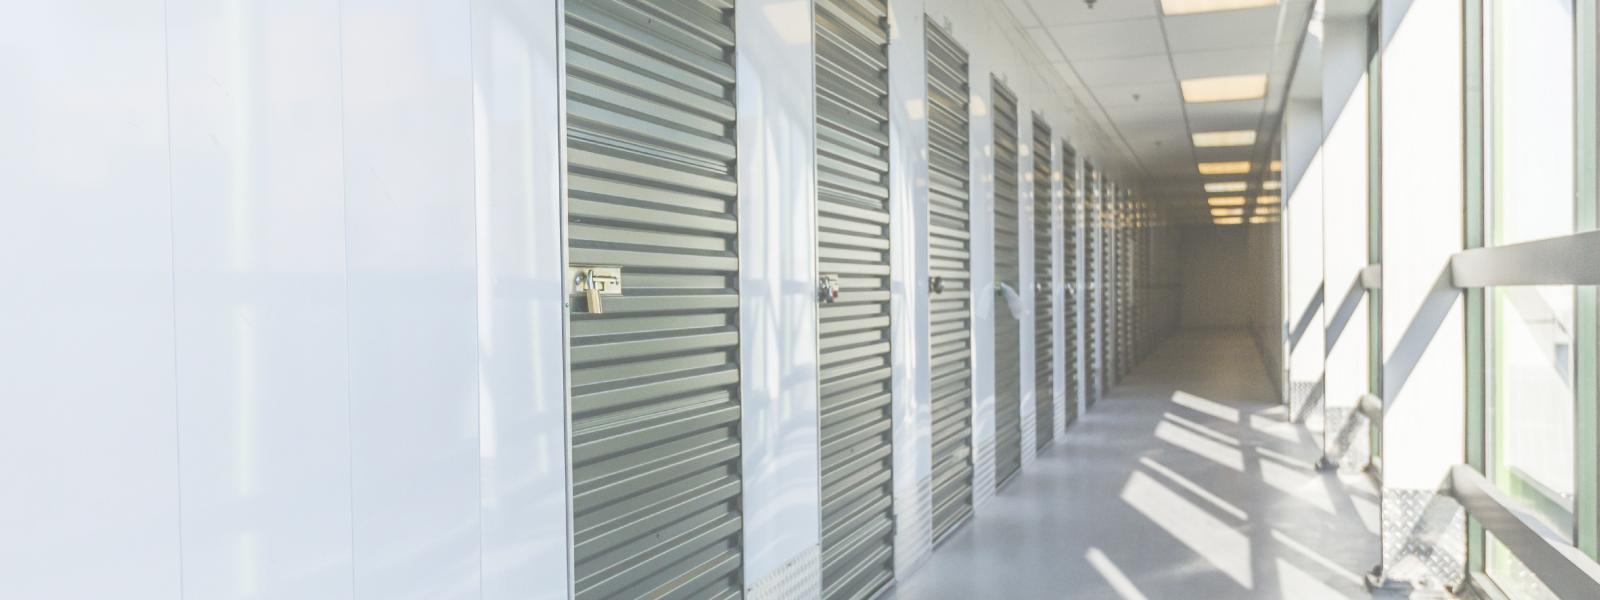 Self Storage Investment Properties | Bull Realty